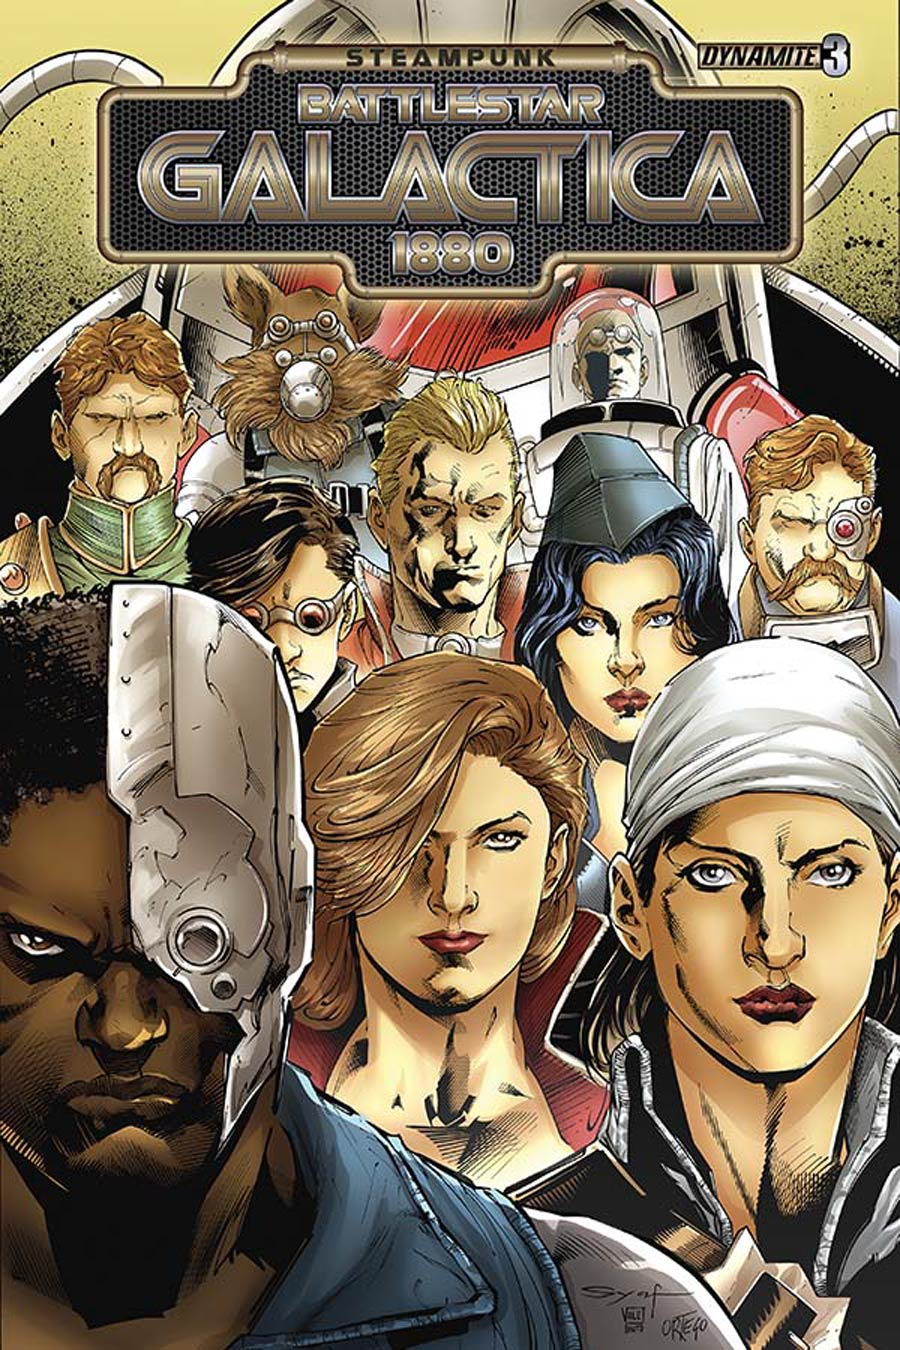 Steampunk Battlestar Galactica 1880 #3 Cover A Regular Ardian Syaf Cover